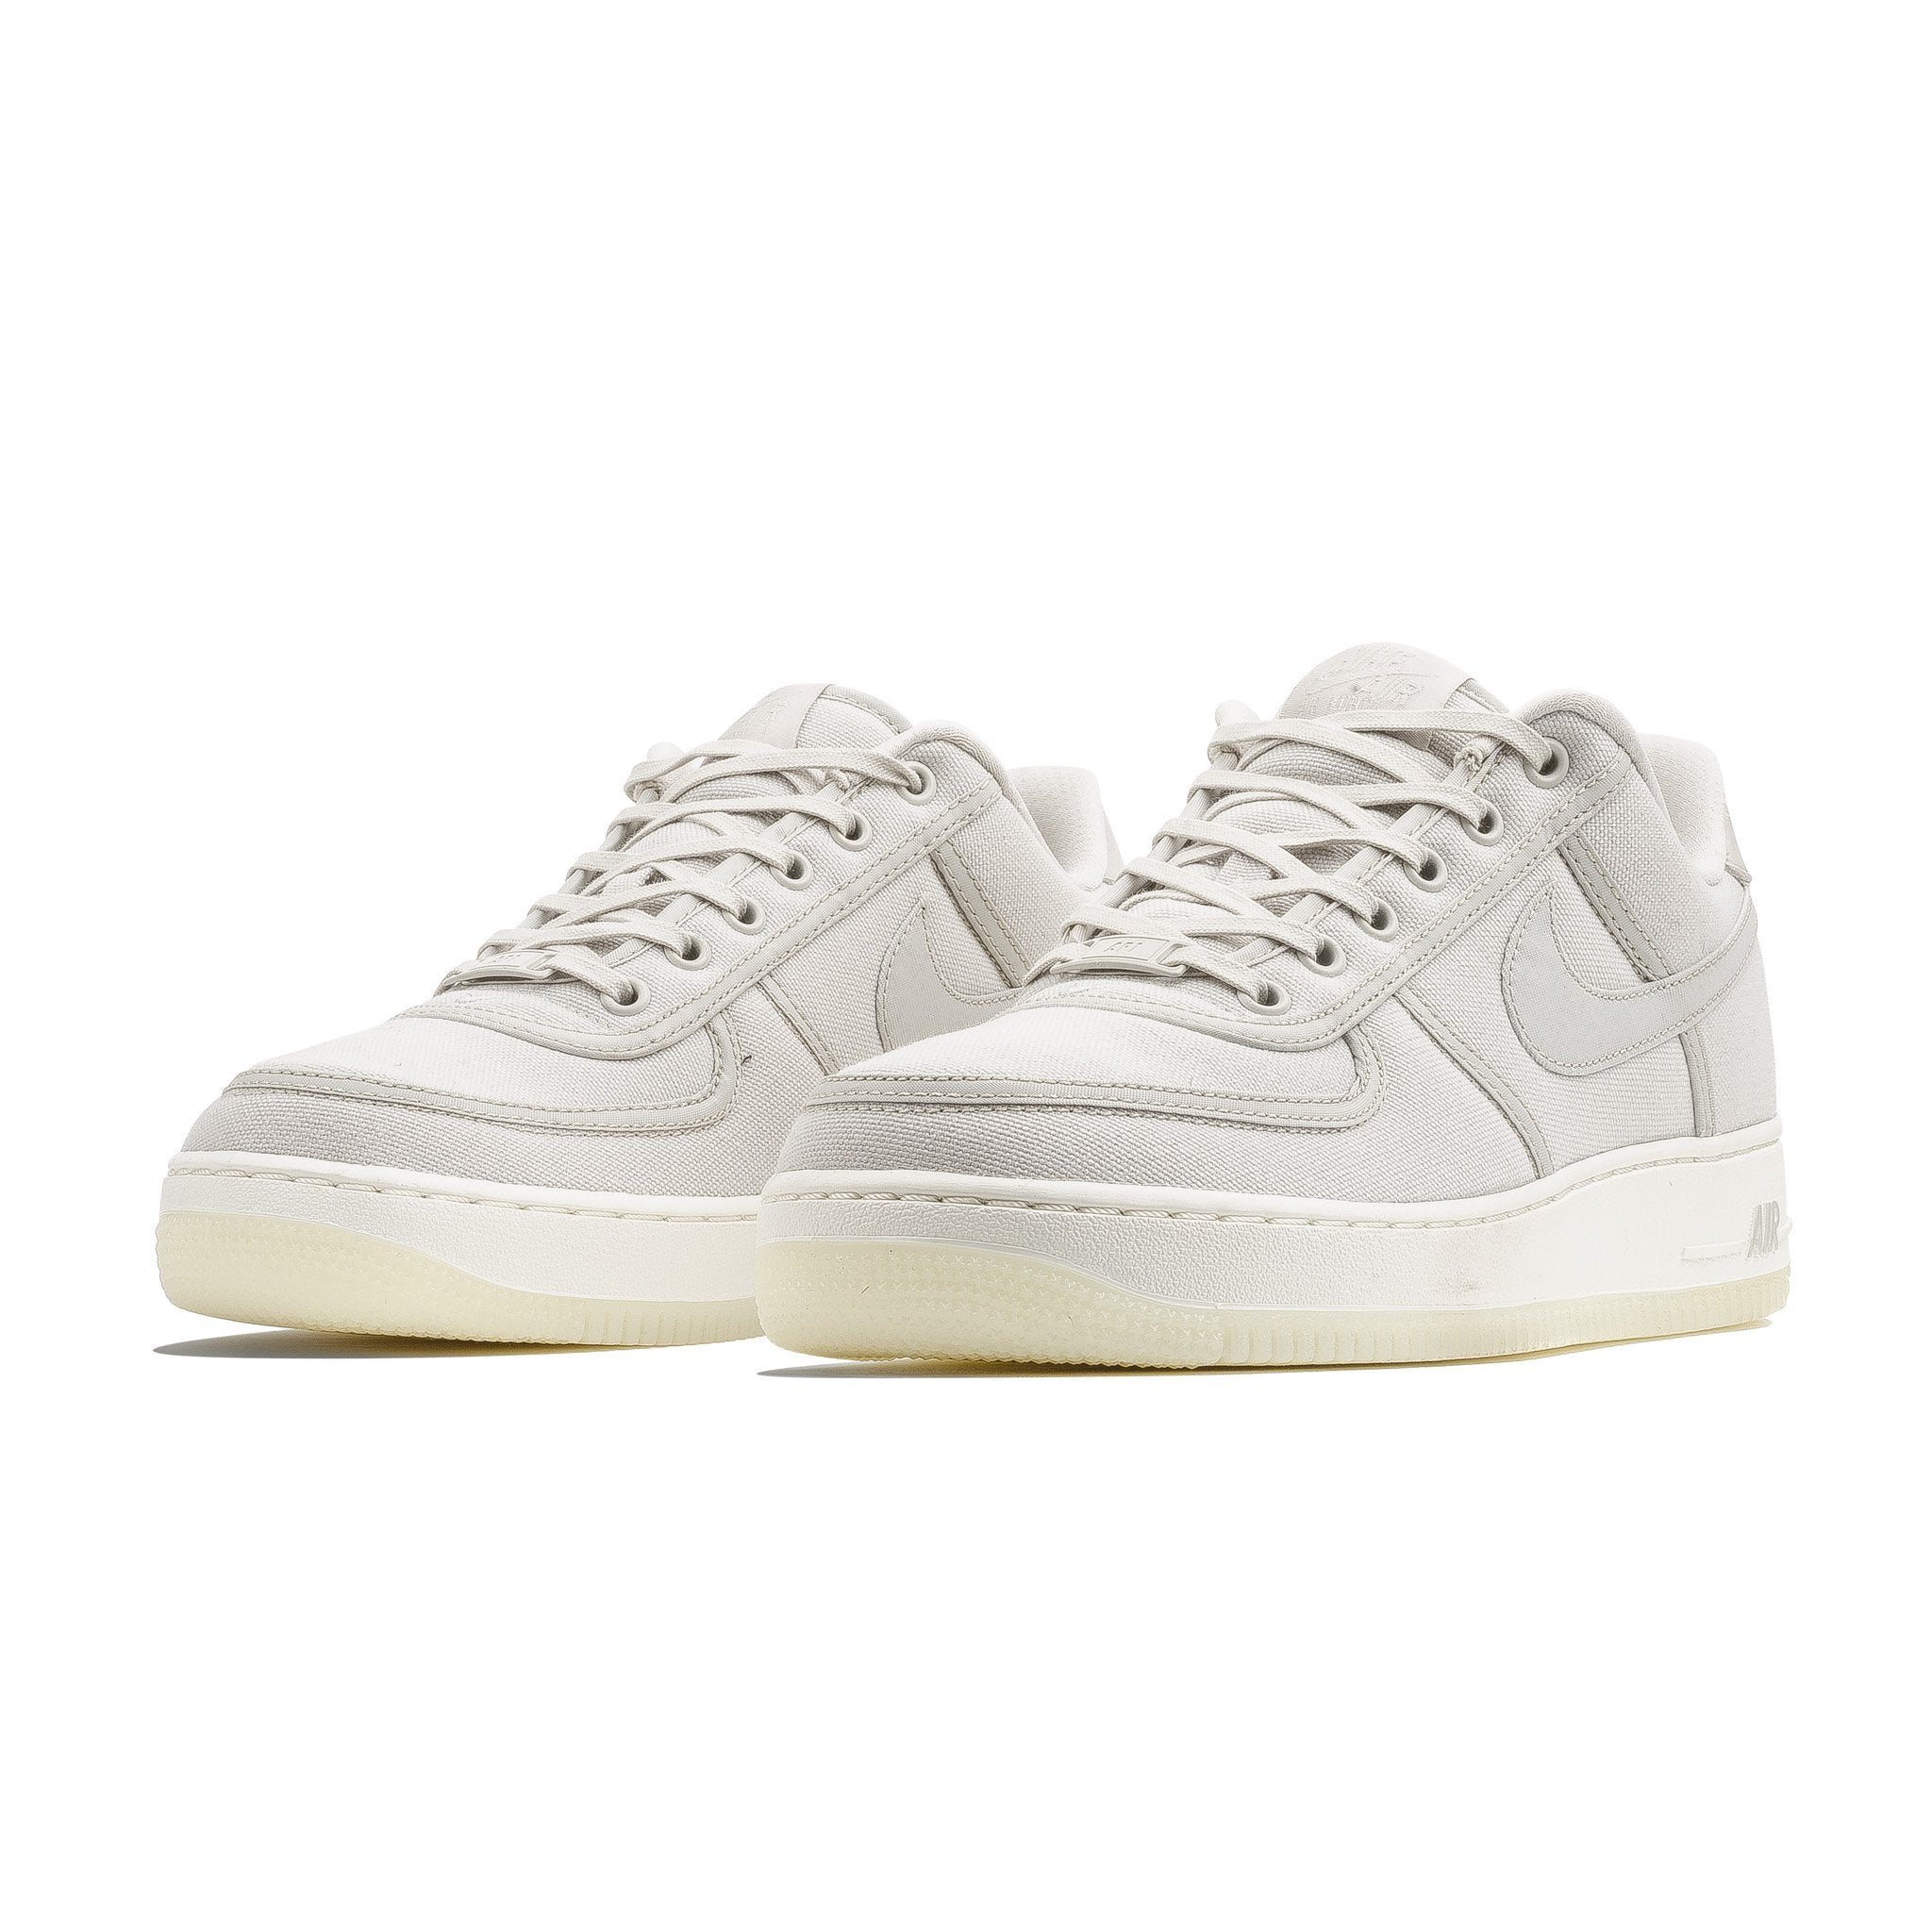 huge discount 931c7 f3f5b Air Force 1 Low Retro QS CNVS AH1067-003 Light Bone